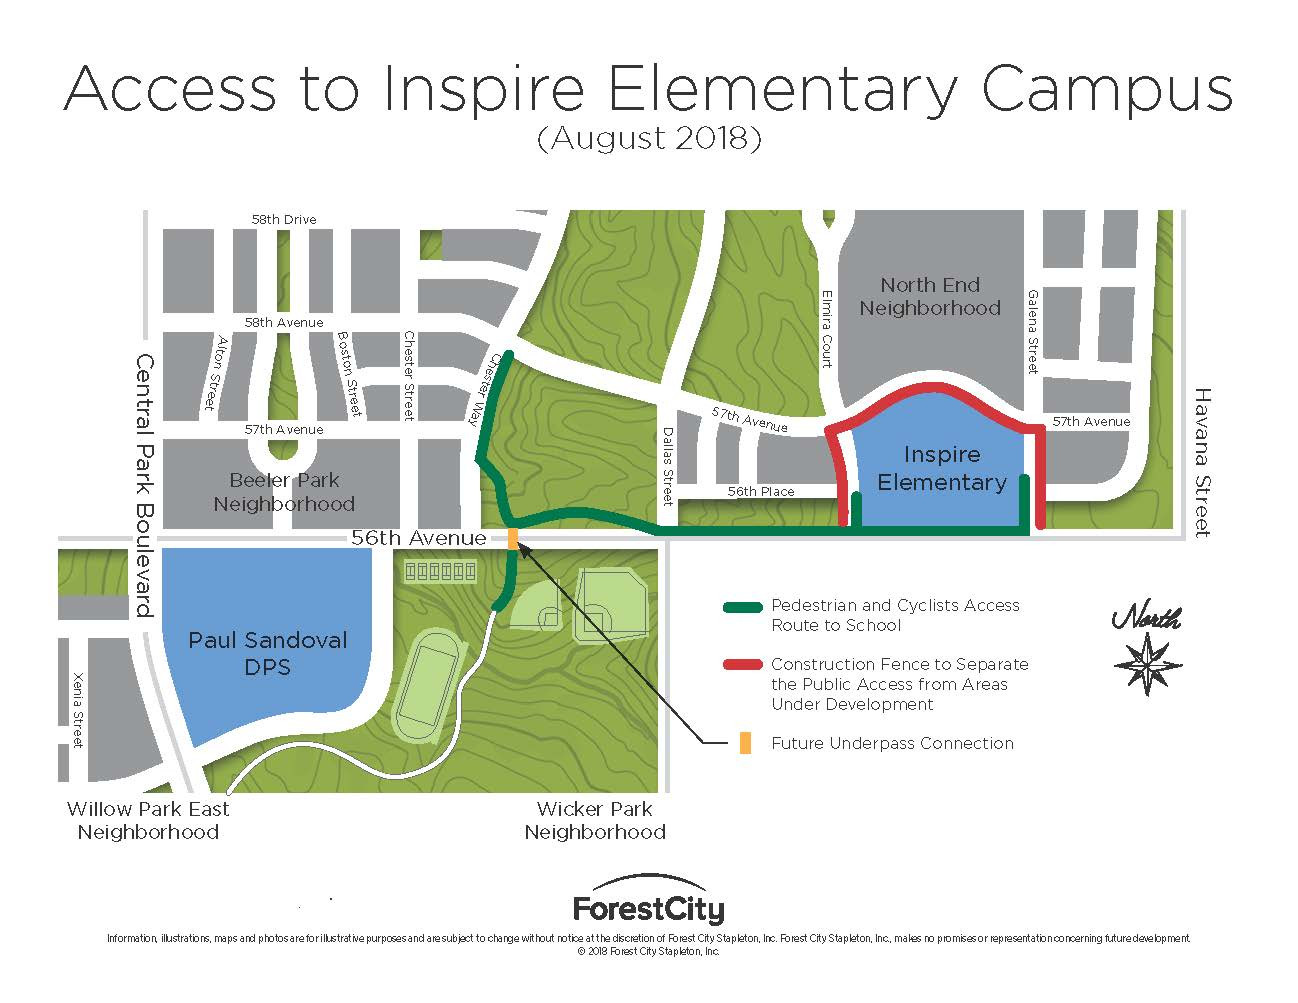 Walking route to the new Inspire Elementary on map of northeast denver, map of cherry creek denver, map of denver international airport, map of lohi denver, map of sunnyside denver, map of jefferson county denver, map of 16th street mall denver, map of capitol hill denver, map of wash park denver, map of city park denver, map of sloans lake denver, map of denver zoo, map of aurora denver, map of lodo denver, map of downtown denver,